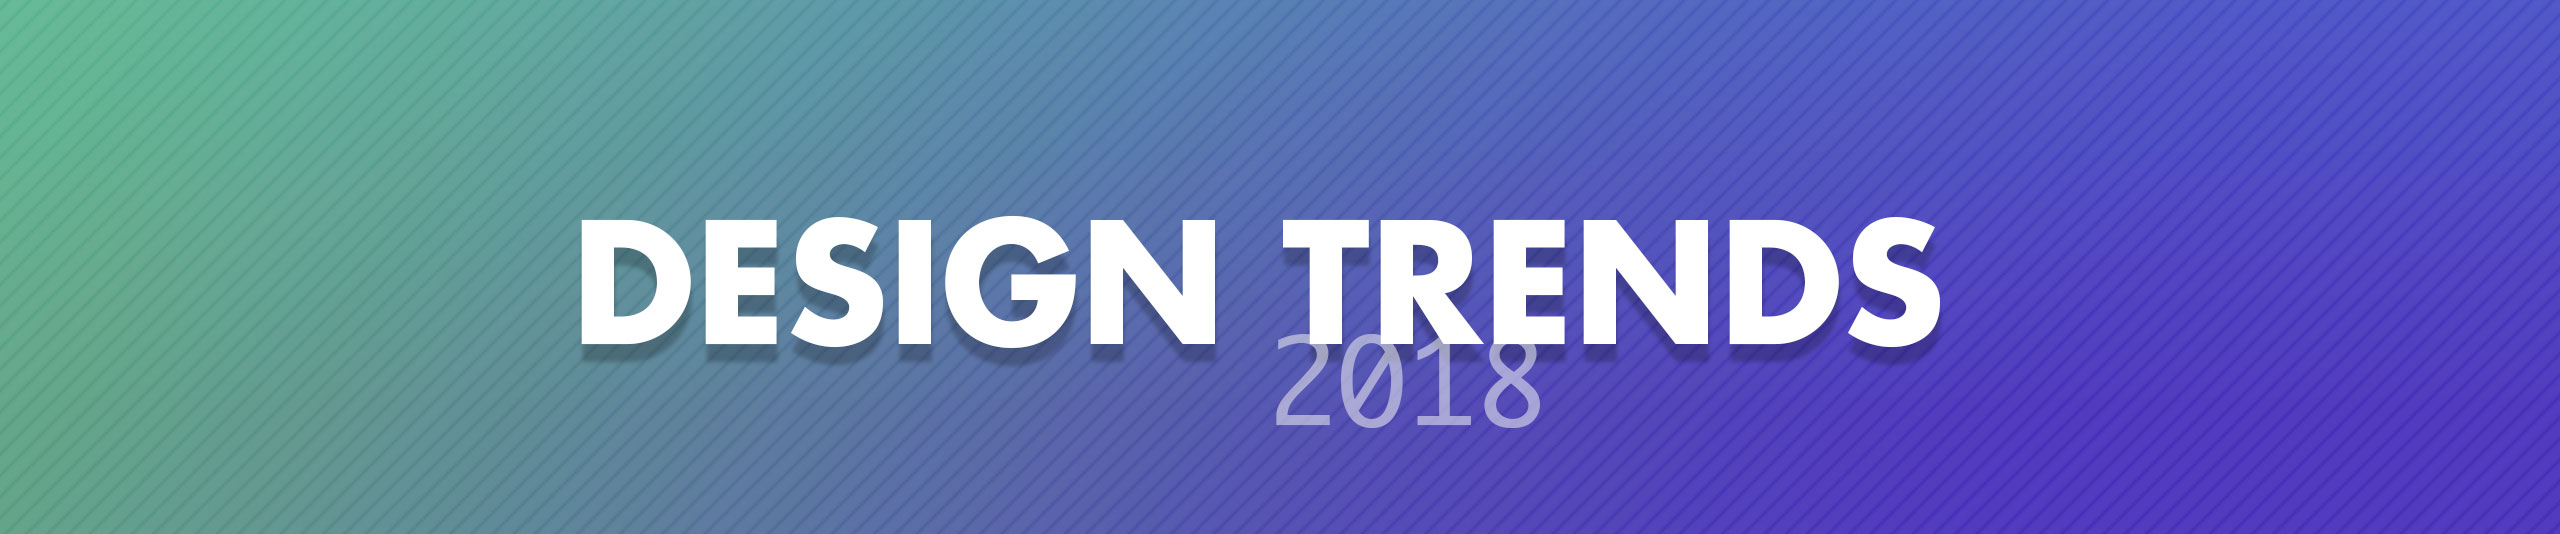 7 New Design Trends that are taking over in 2018